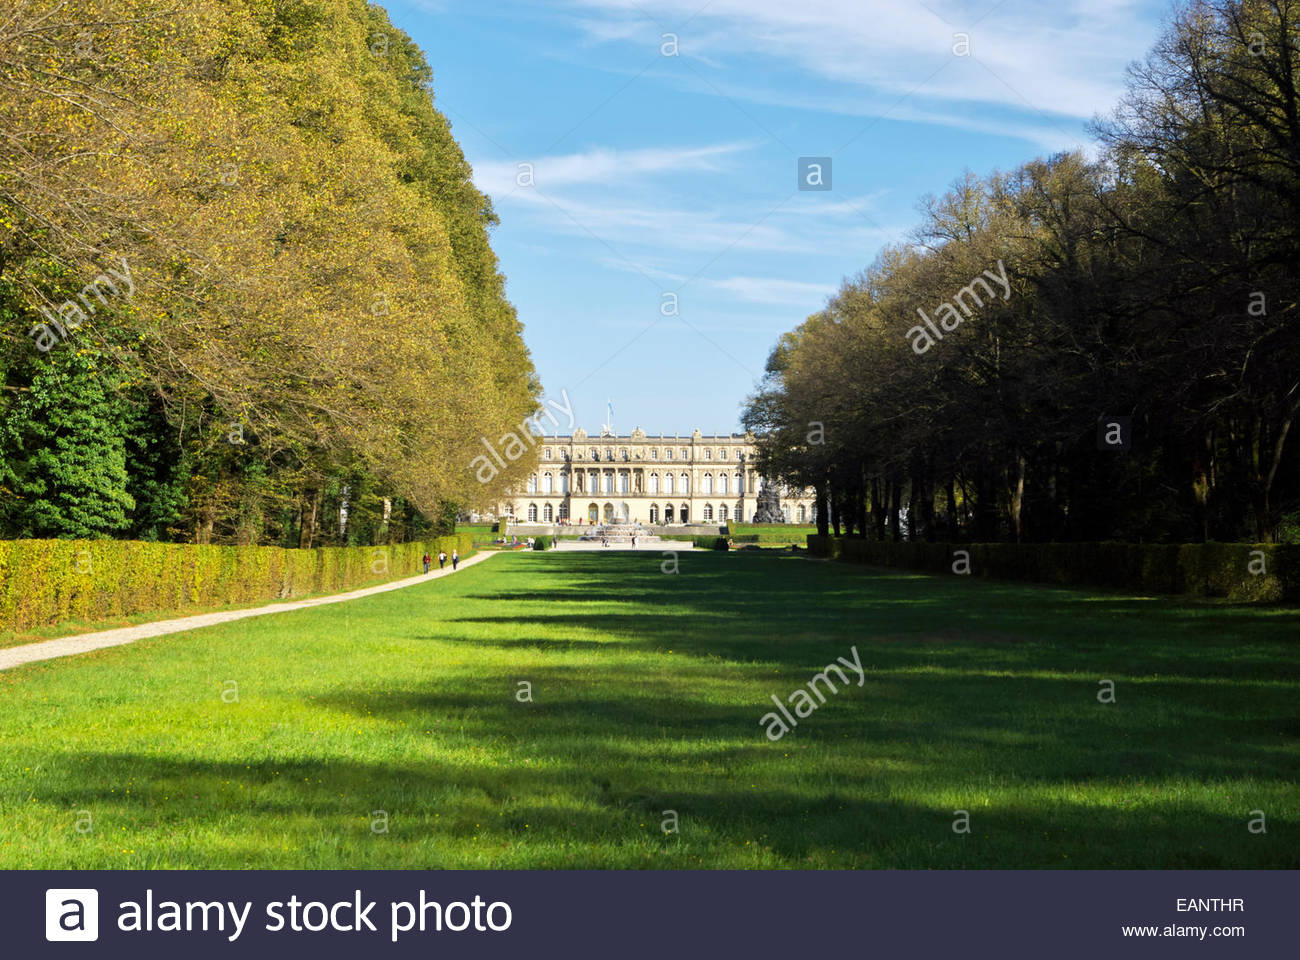 Former Benedictine abbey Herrenchiemsee on island of Herreninsel, purchased and converted to a palace by Ludwig - Stock Image